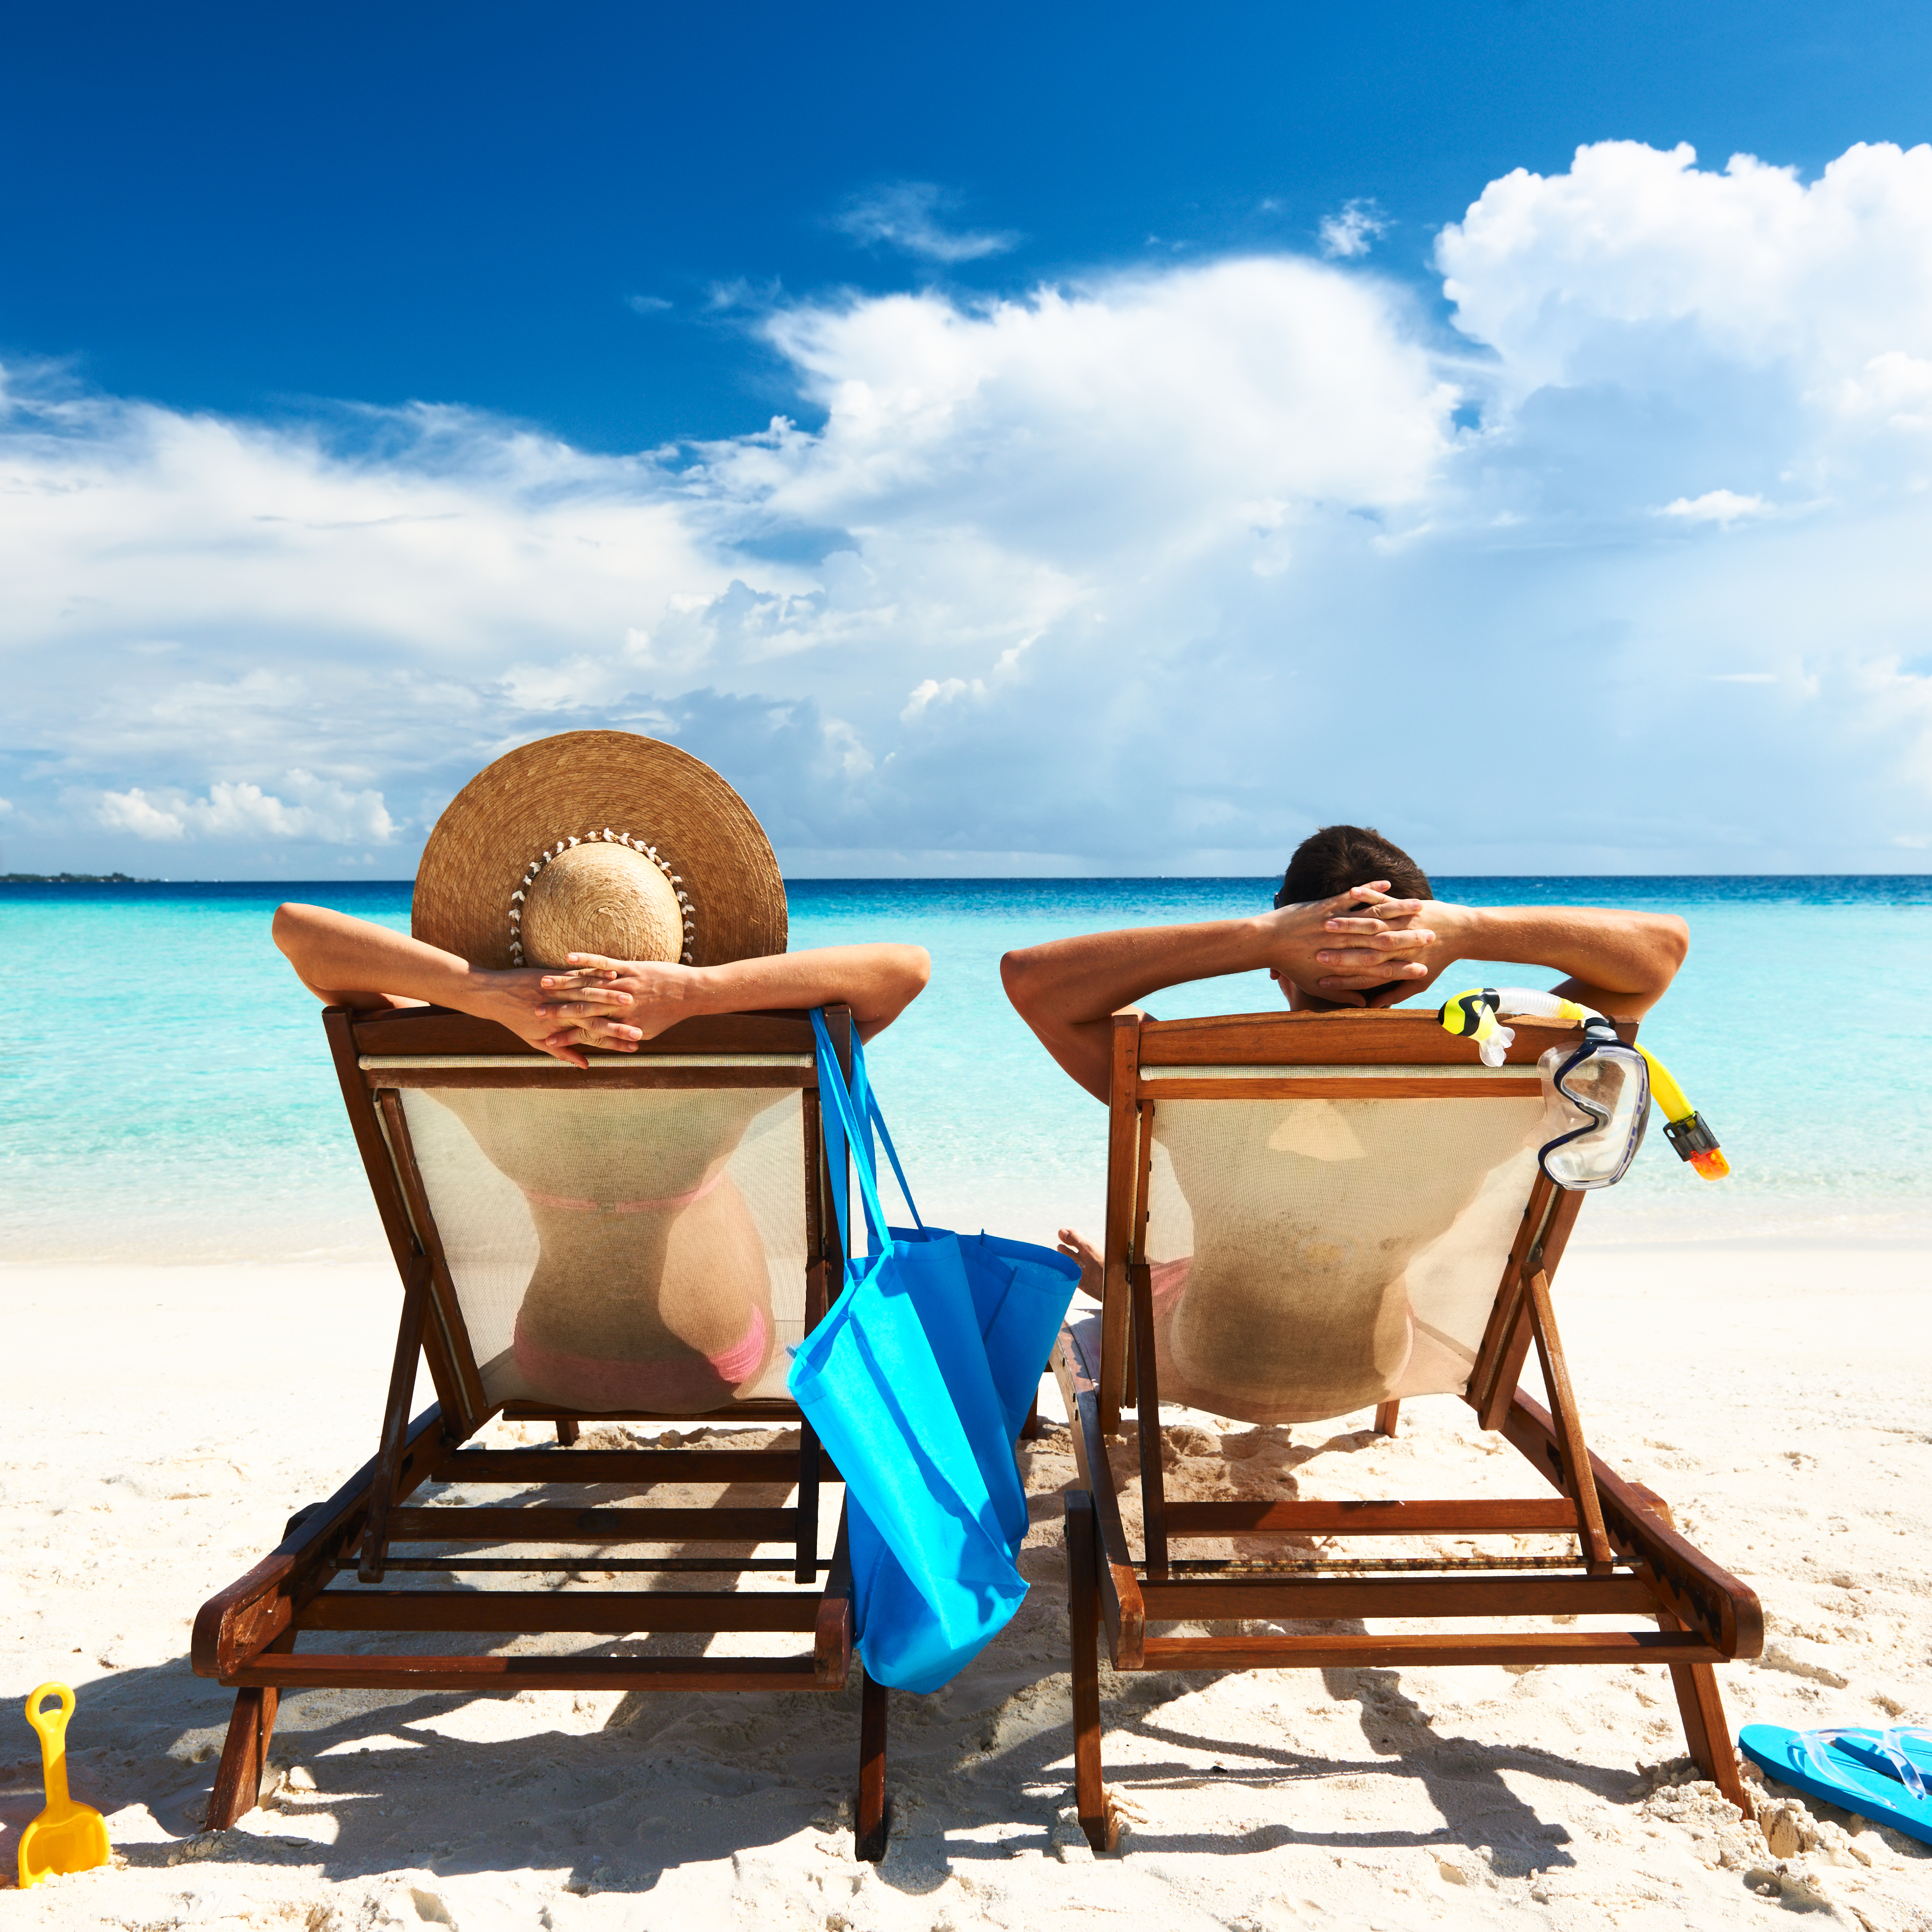 7 easy steps for booking a sunbed with Easy Beach Booking | Easy ...